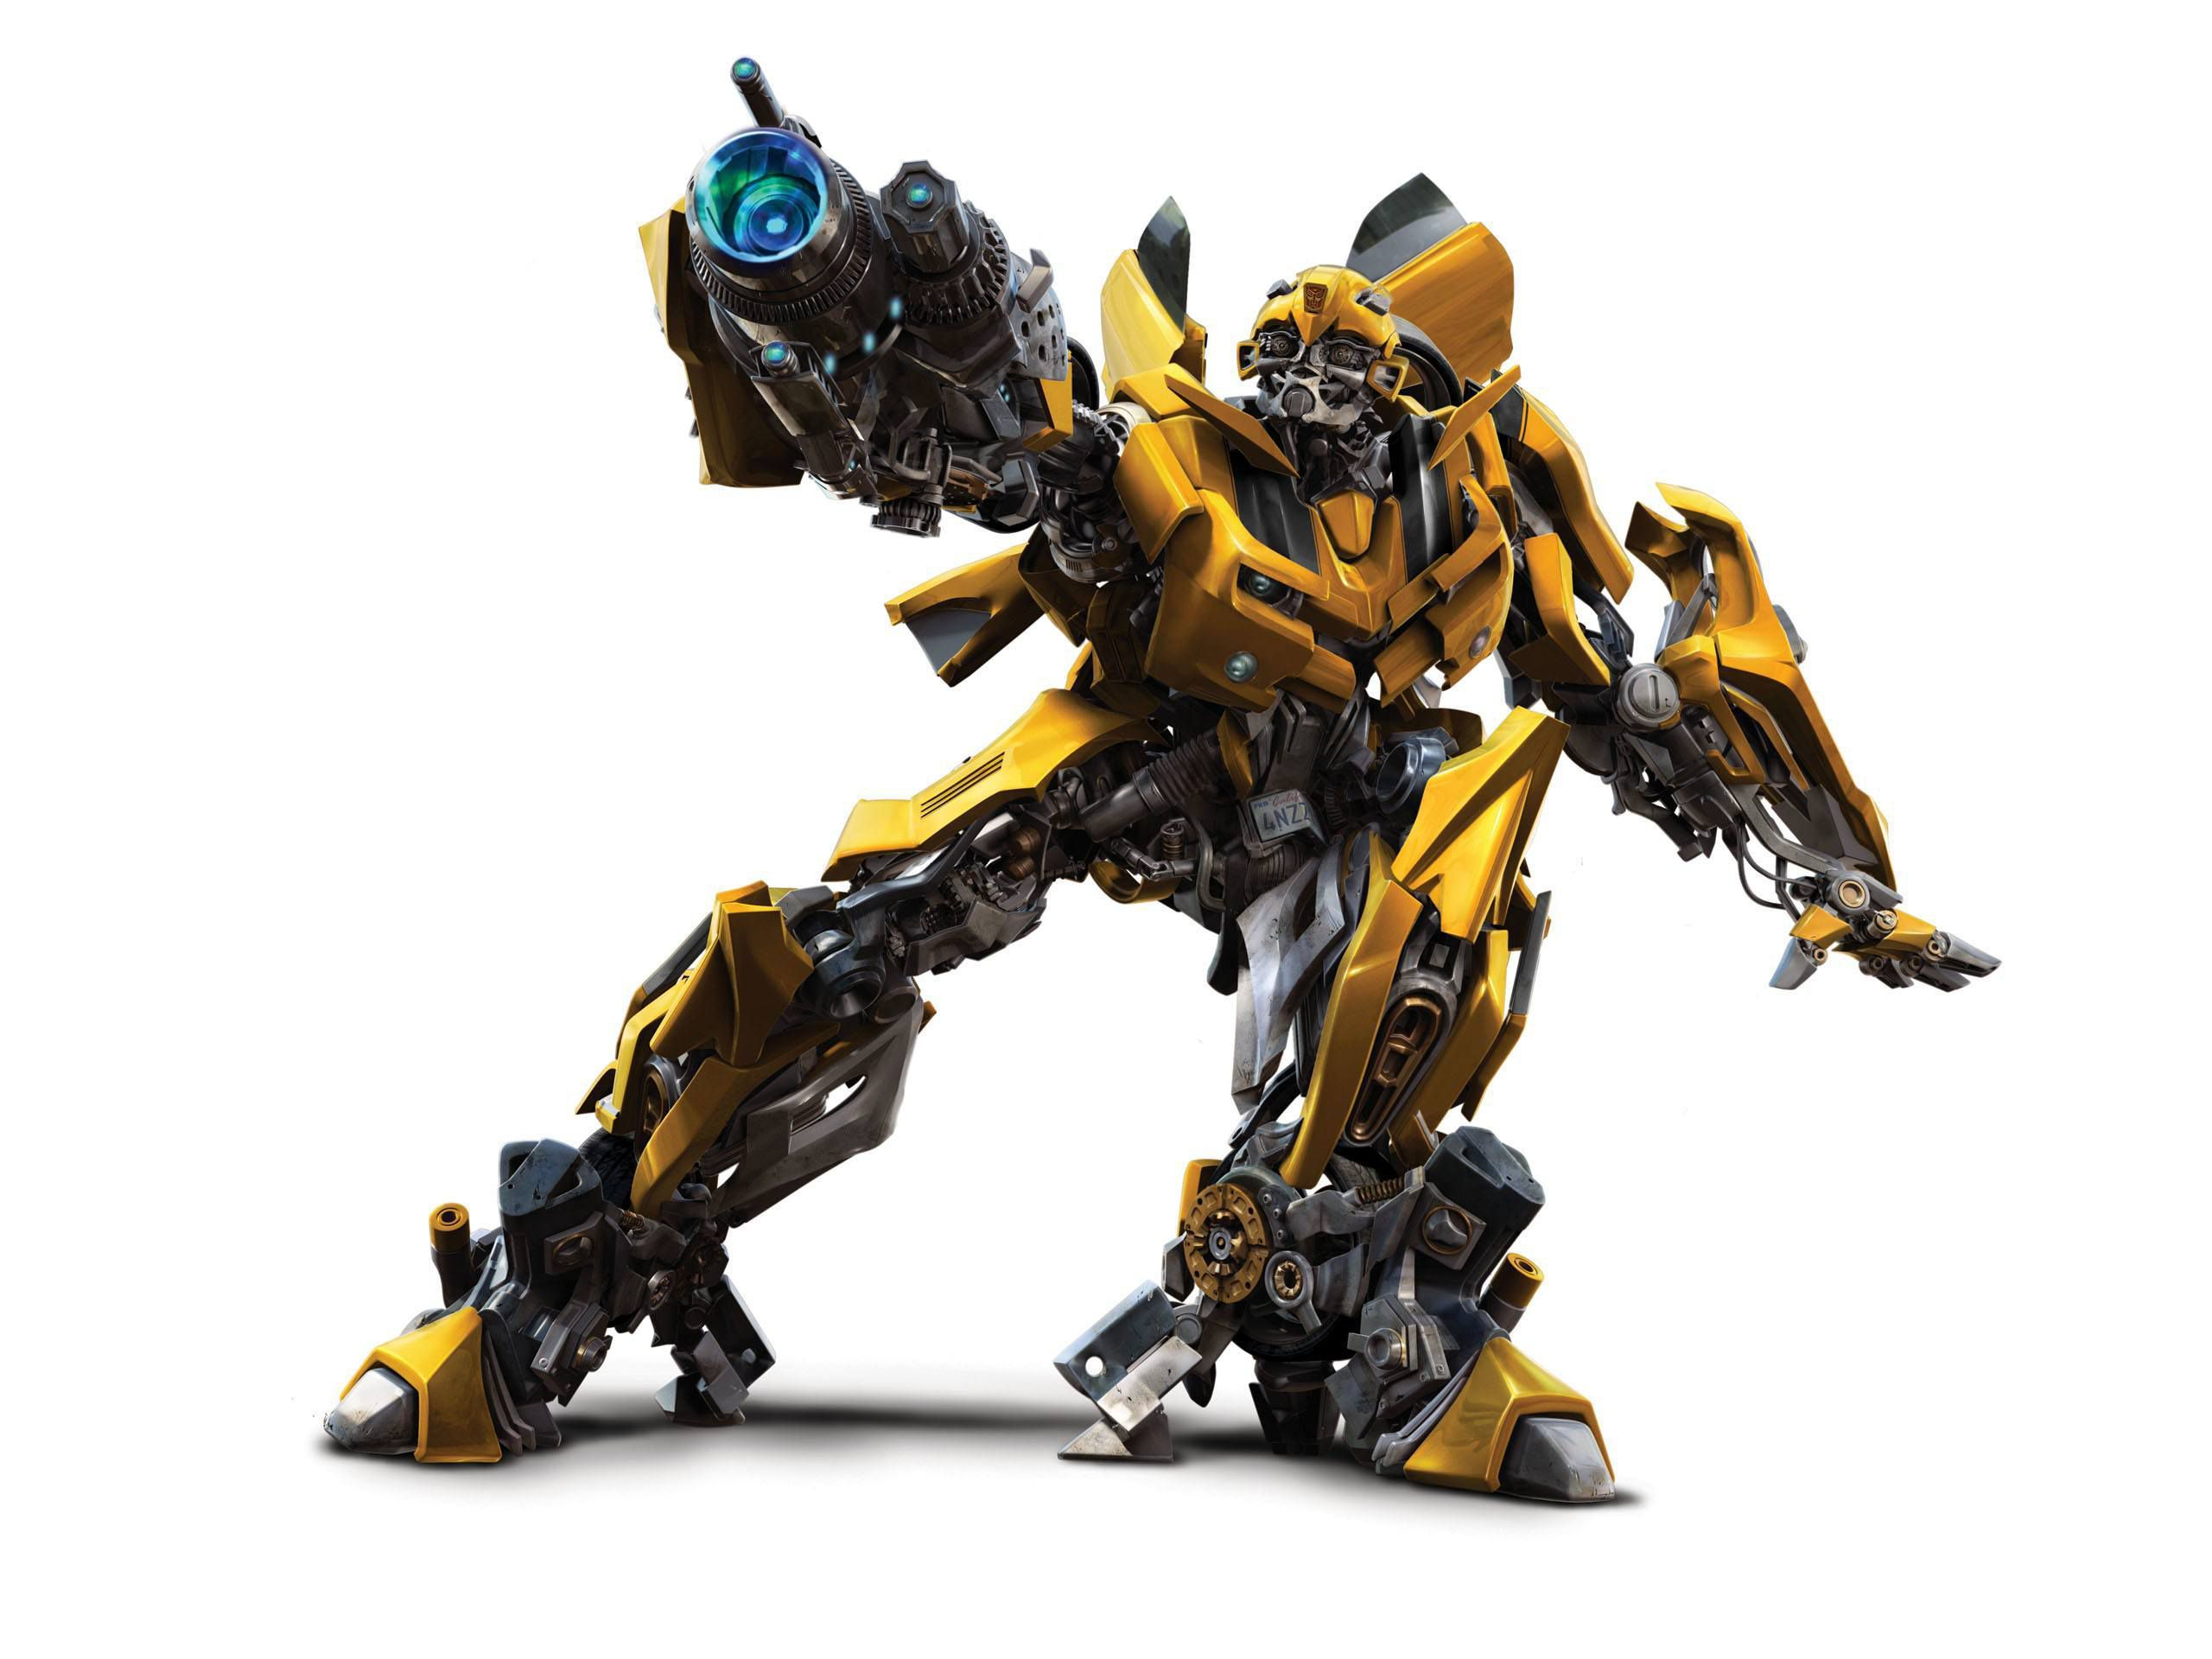 Bumblebee Transformer High Quality Wallpapers